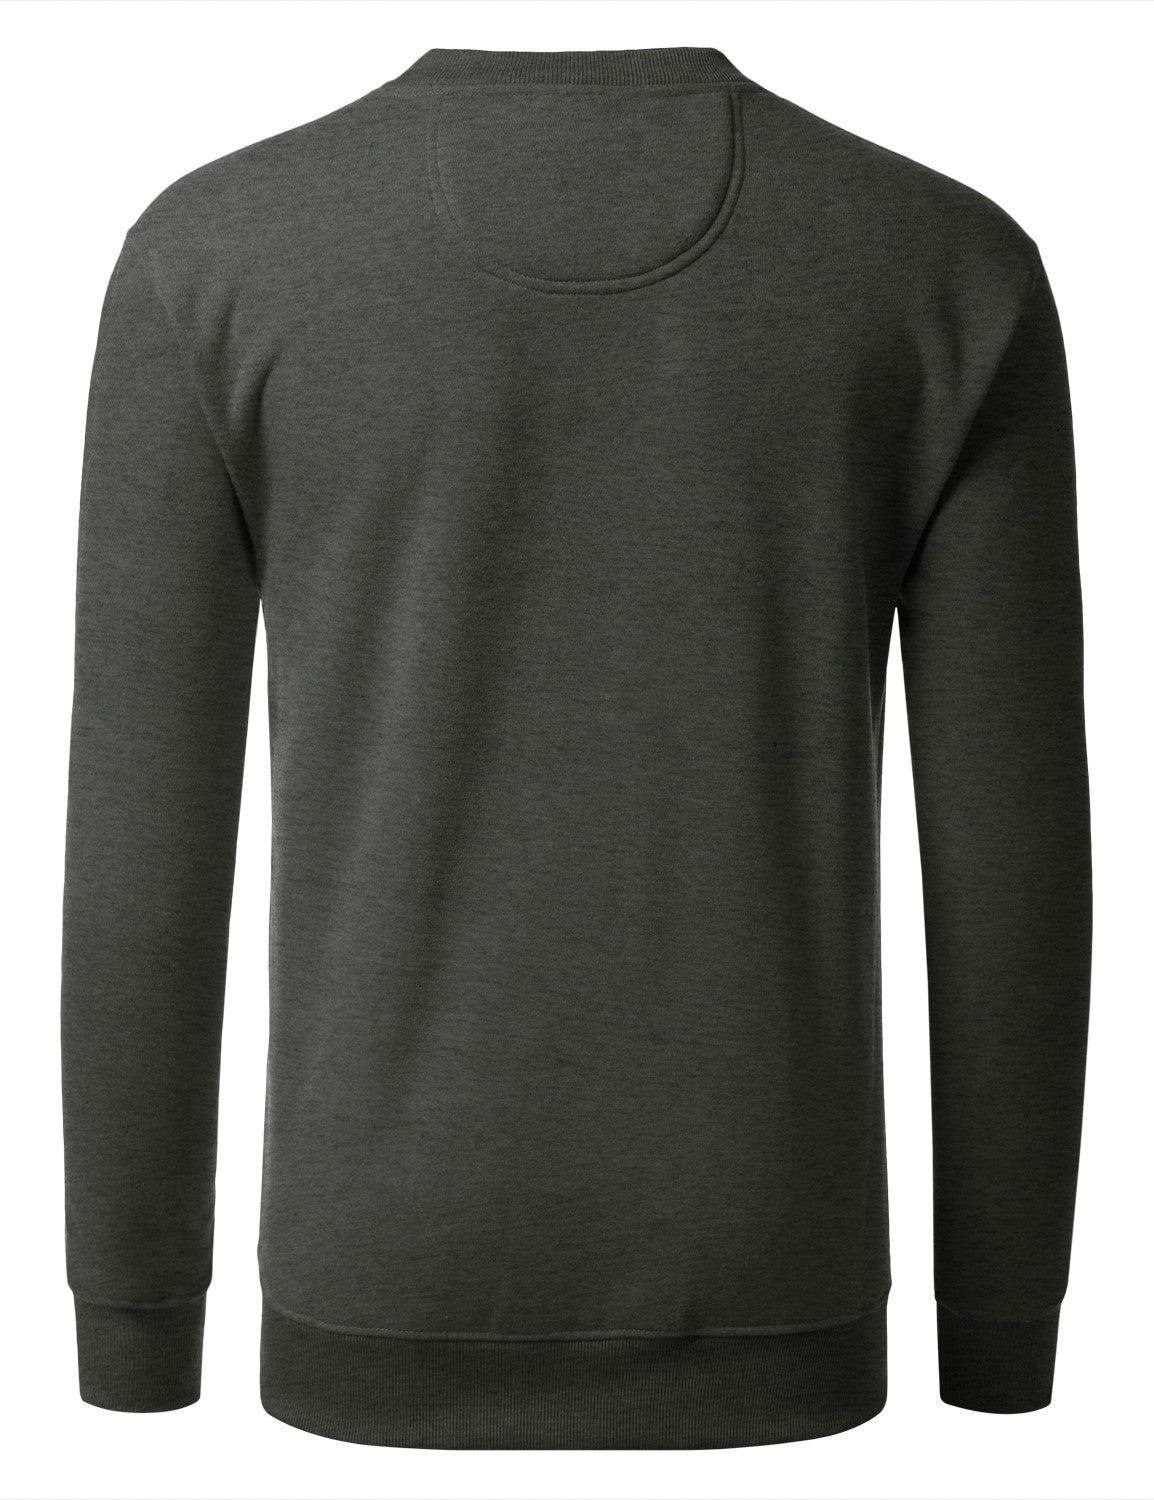 CHARCOAL Basic Crewneck Sweatshirt-Various Colors - URBANCREWS